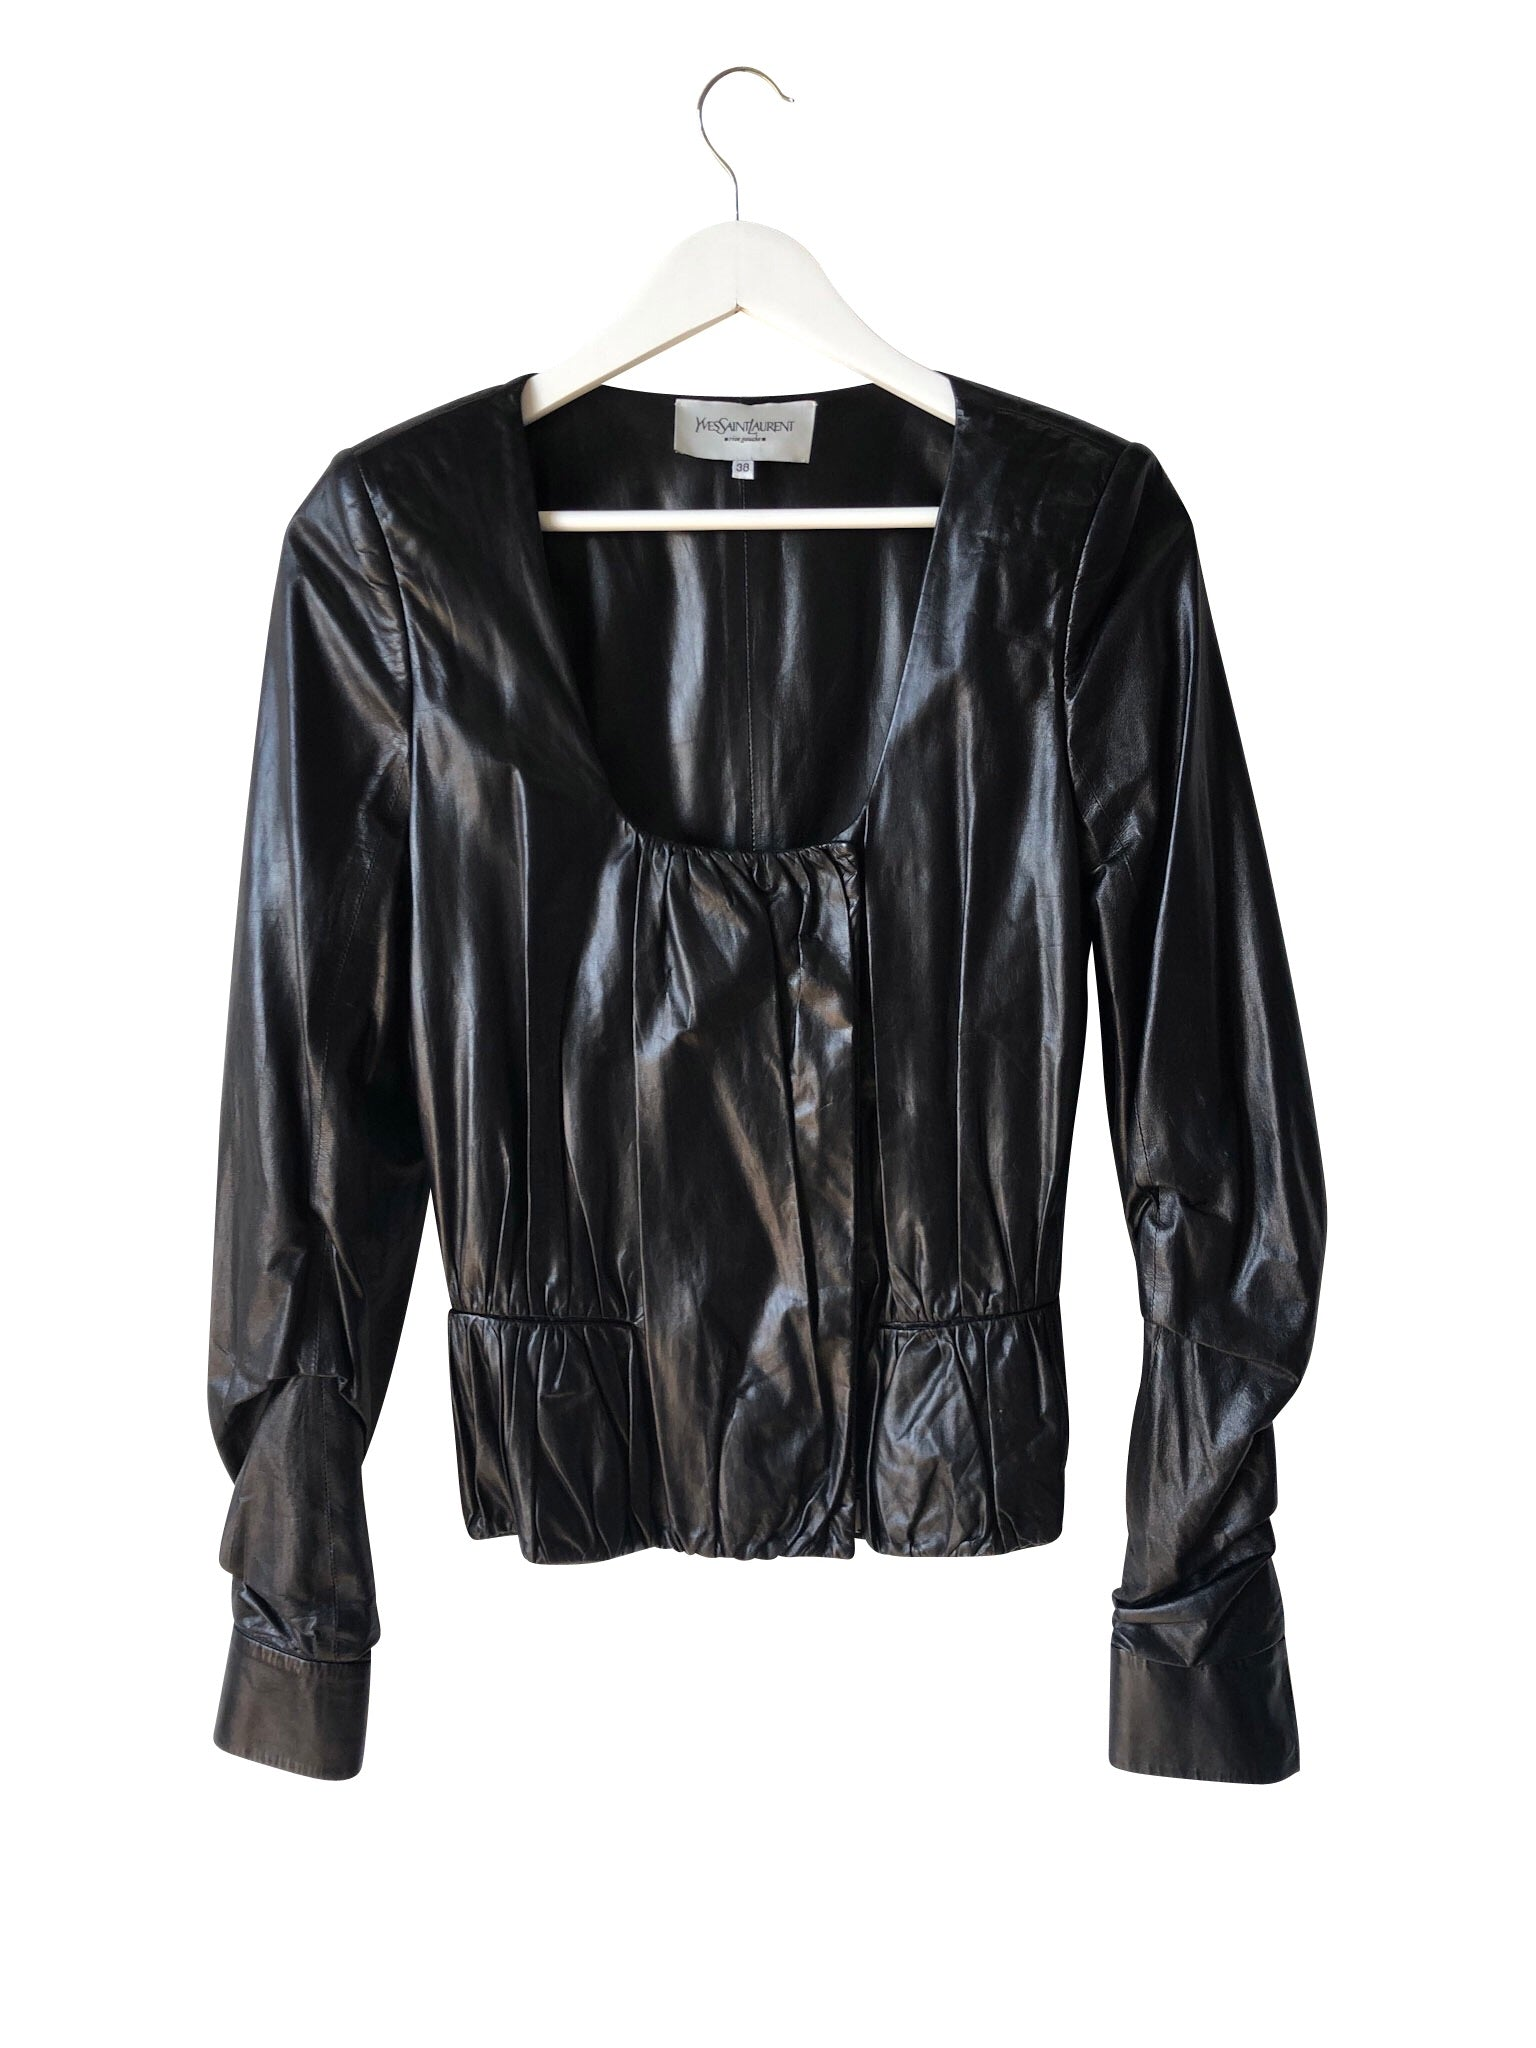 Yves Saint Laurent Leather Top